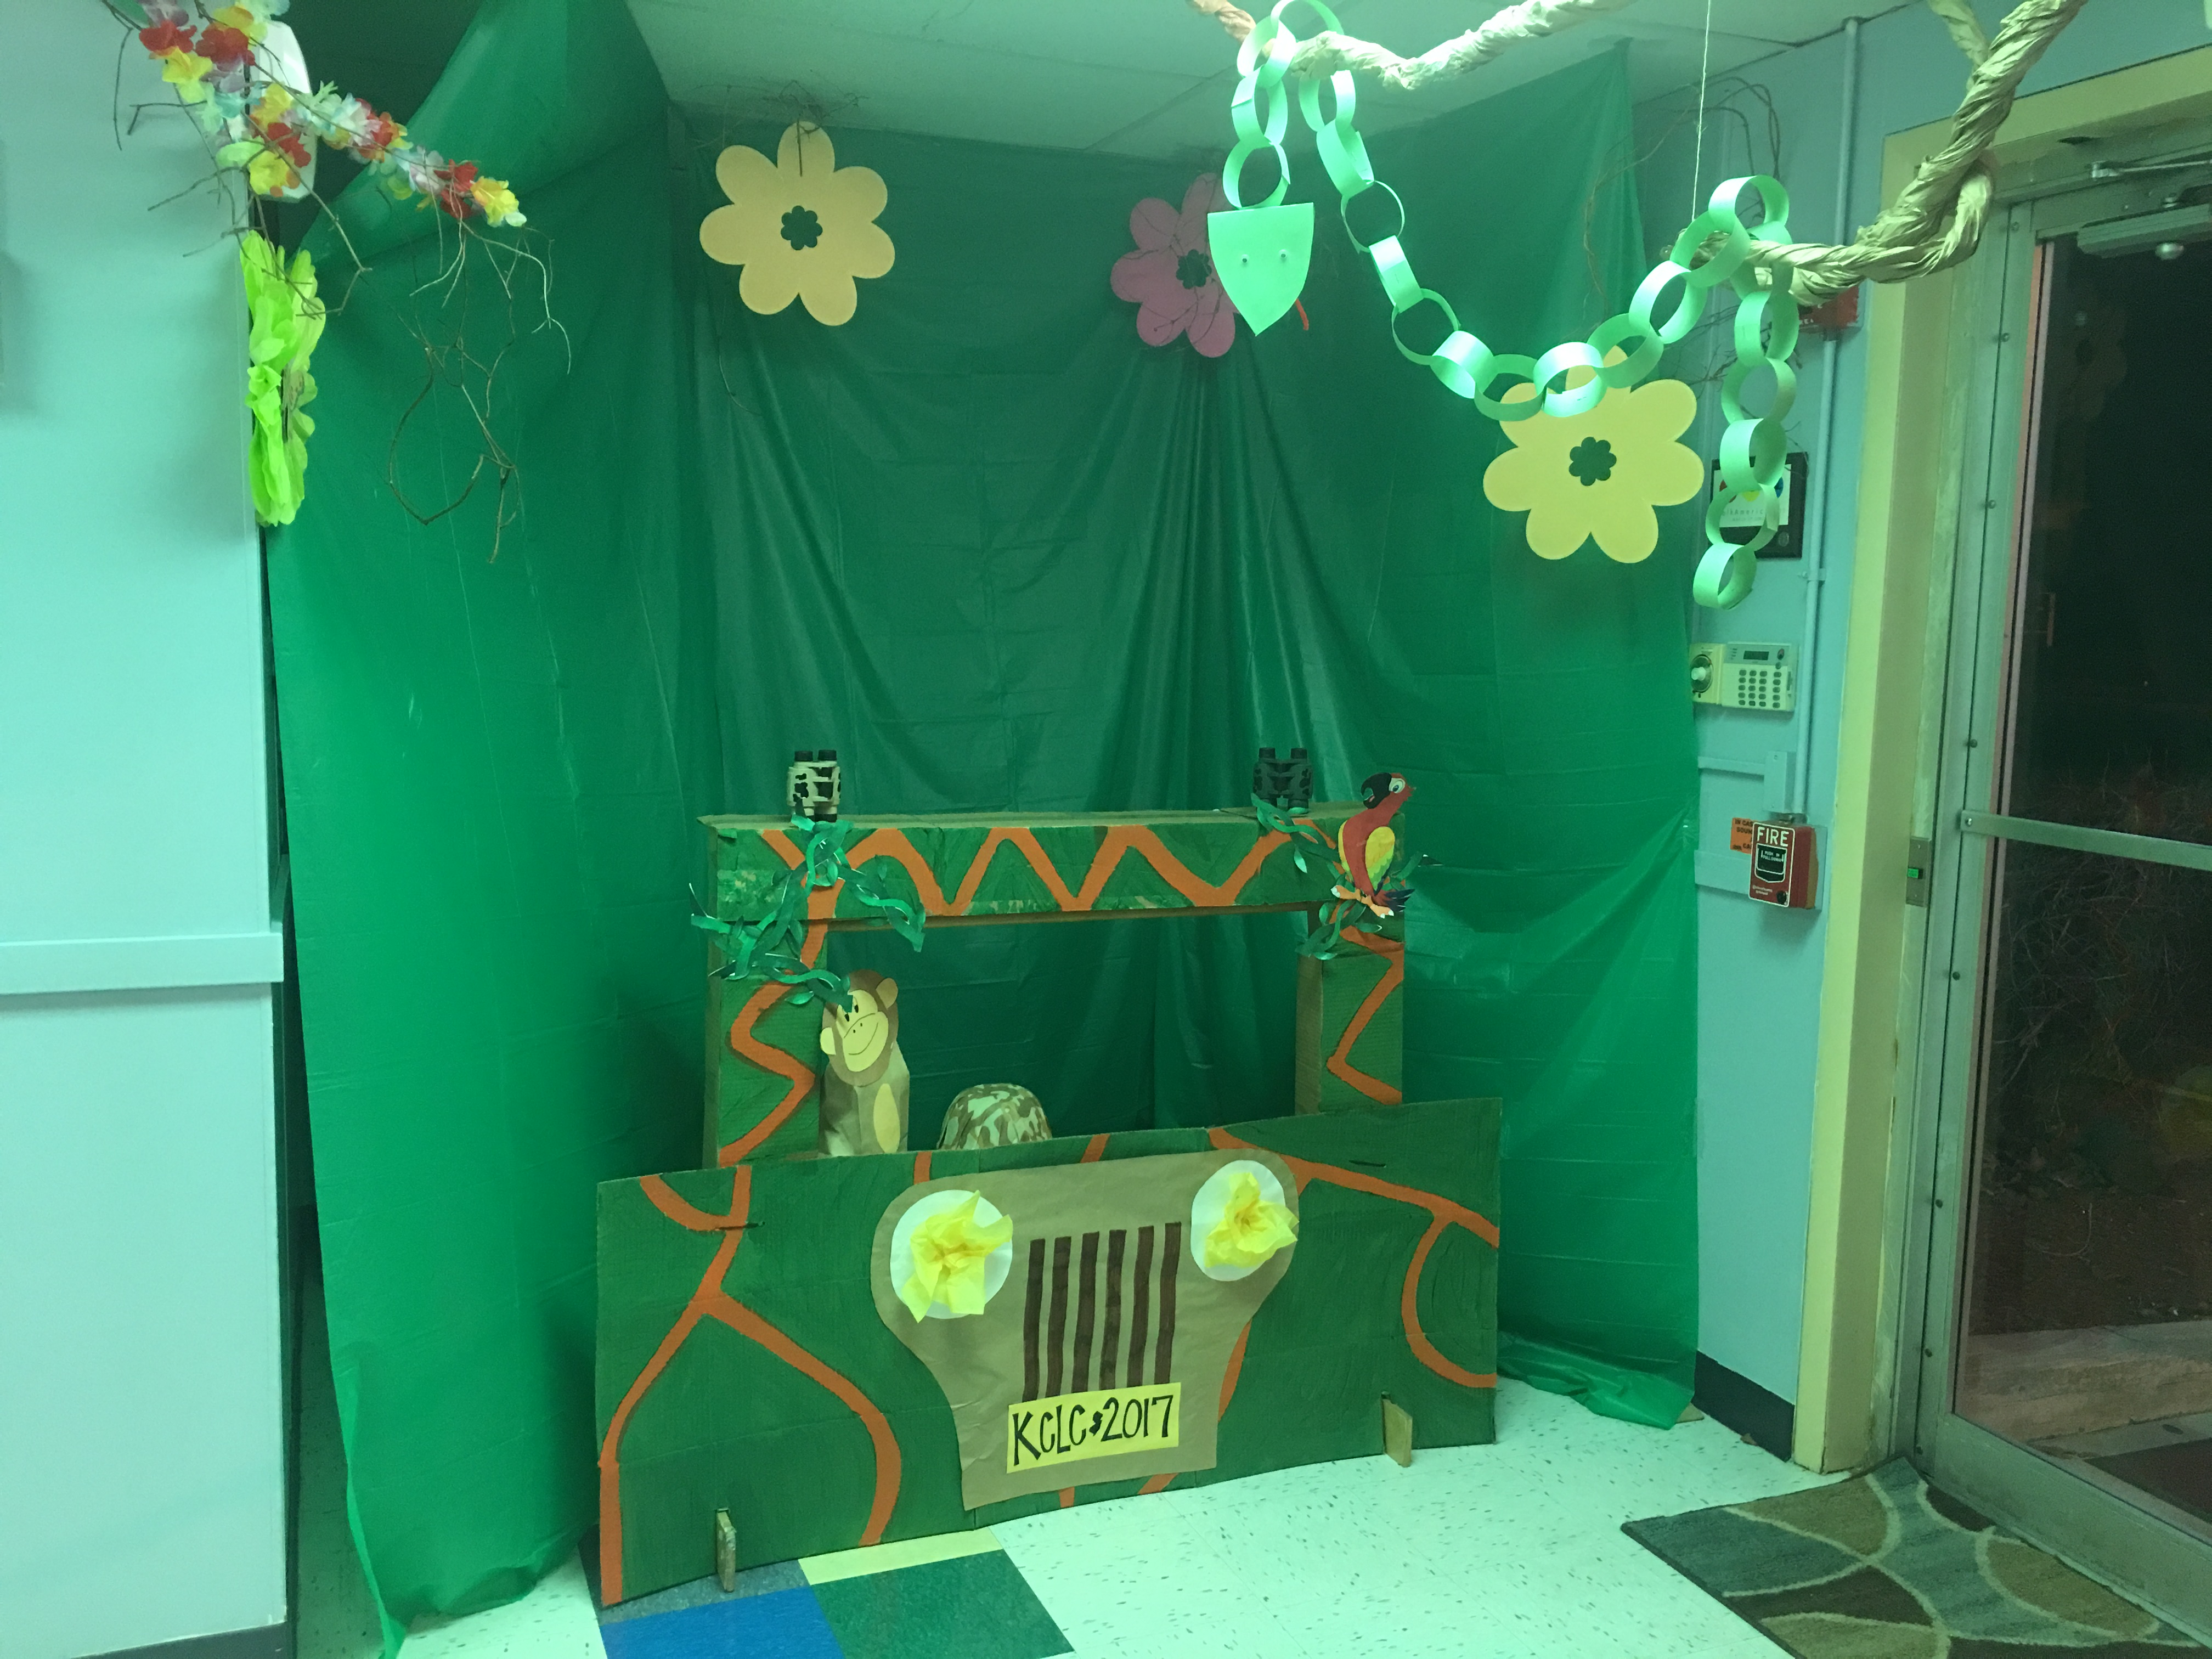 Welcome To The Jungle! Parents will enjoy our Summer Sneak Peek Photo Booth!! Stop in and see all of the wonderful things we have planned!!